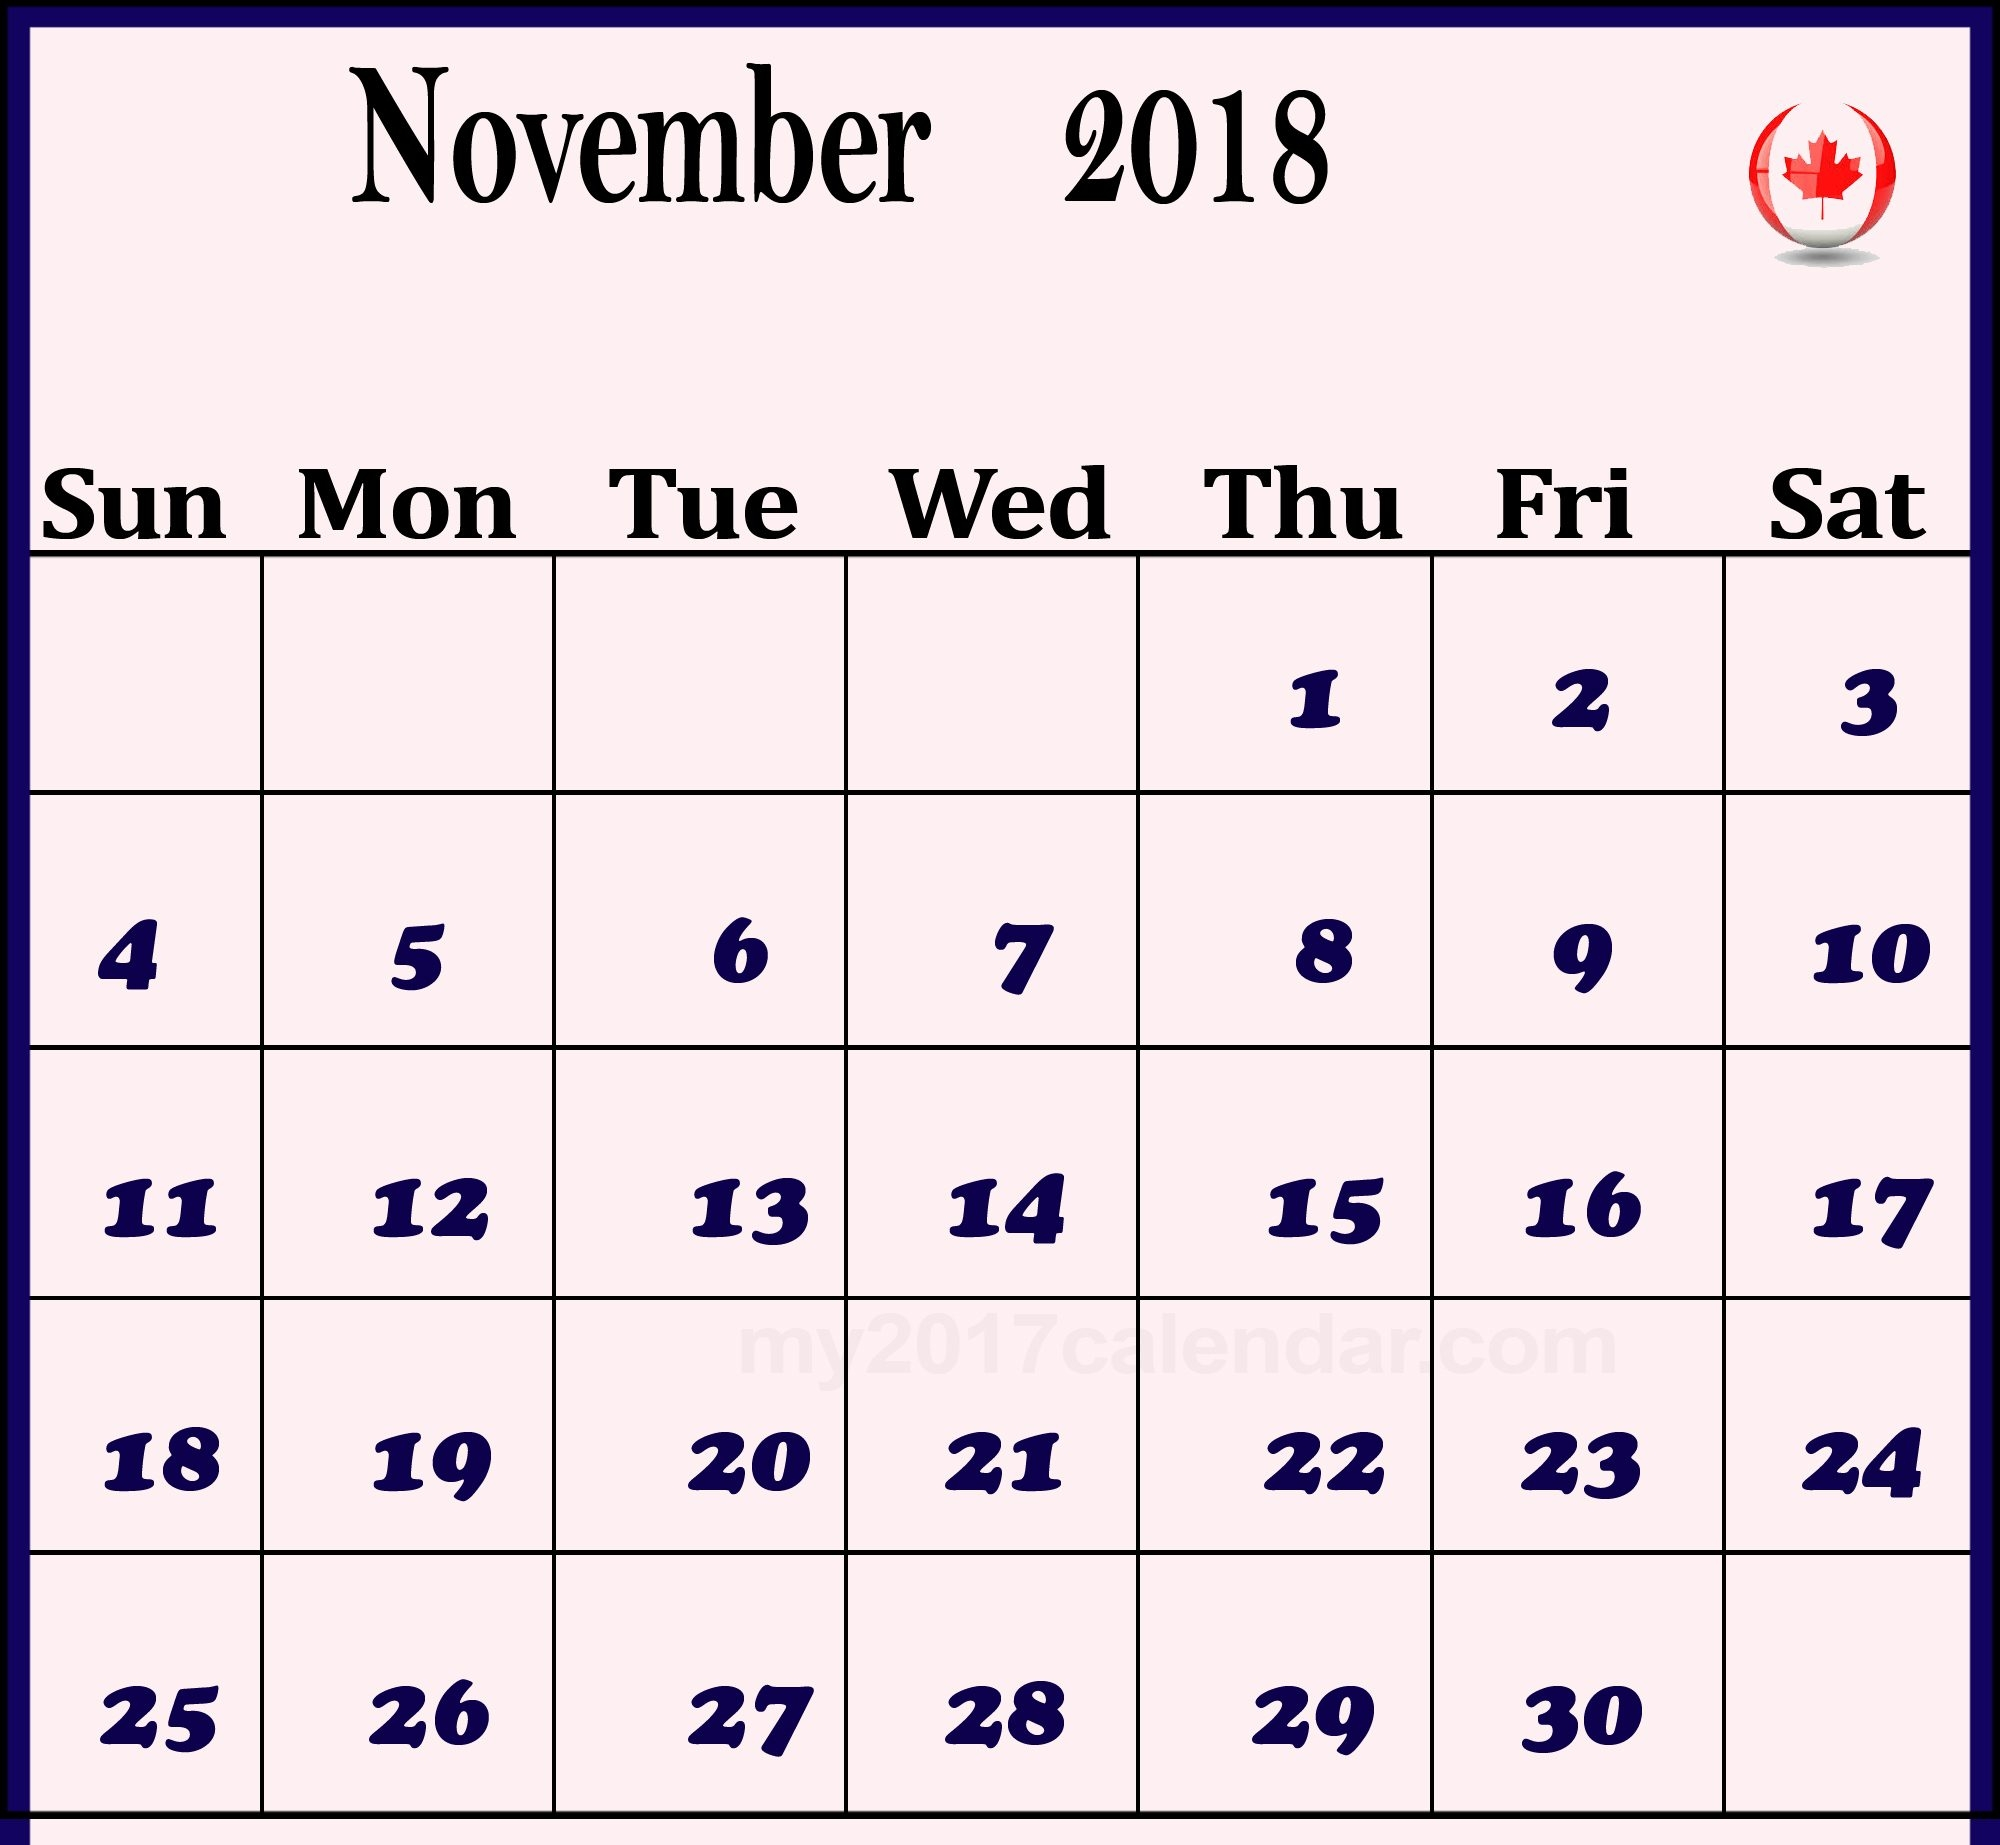 calendar 2018 november canada business calendar templates::November 2018 Calendar Canada